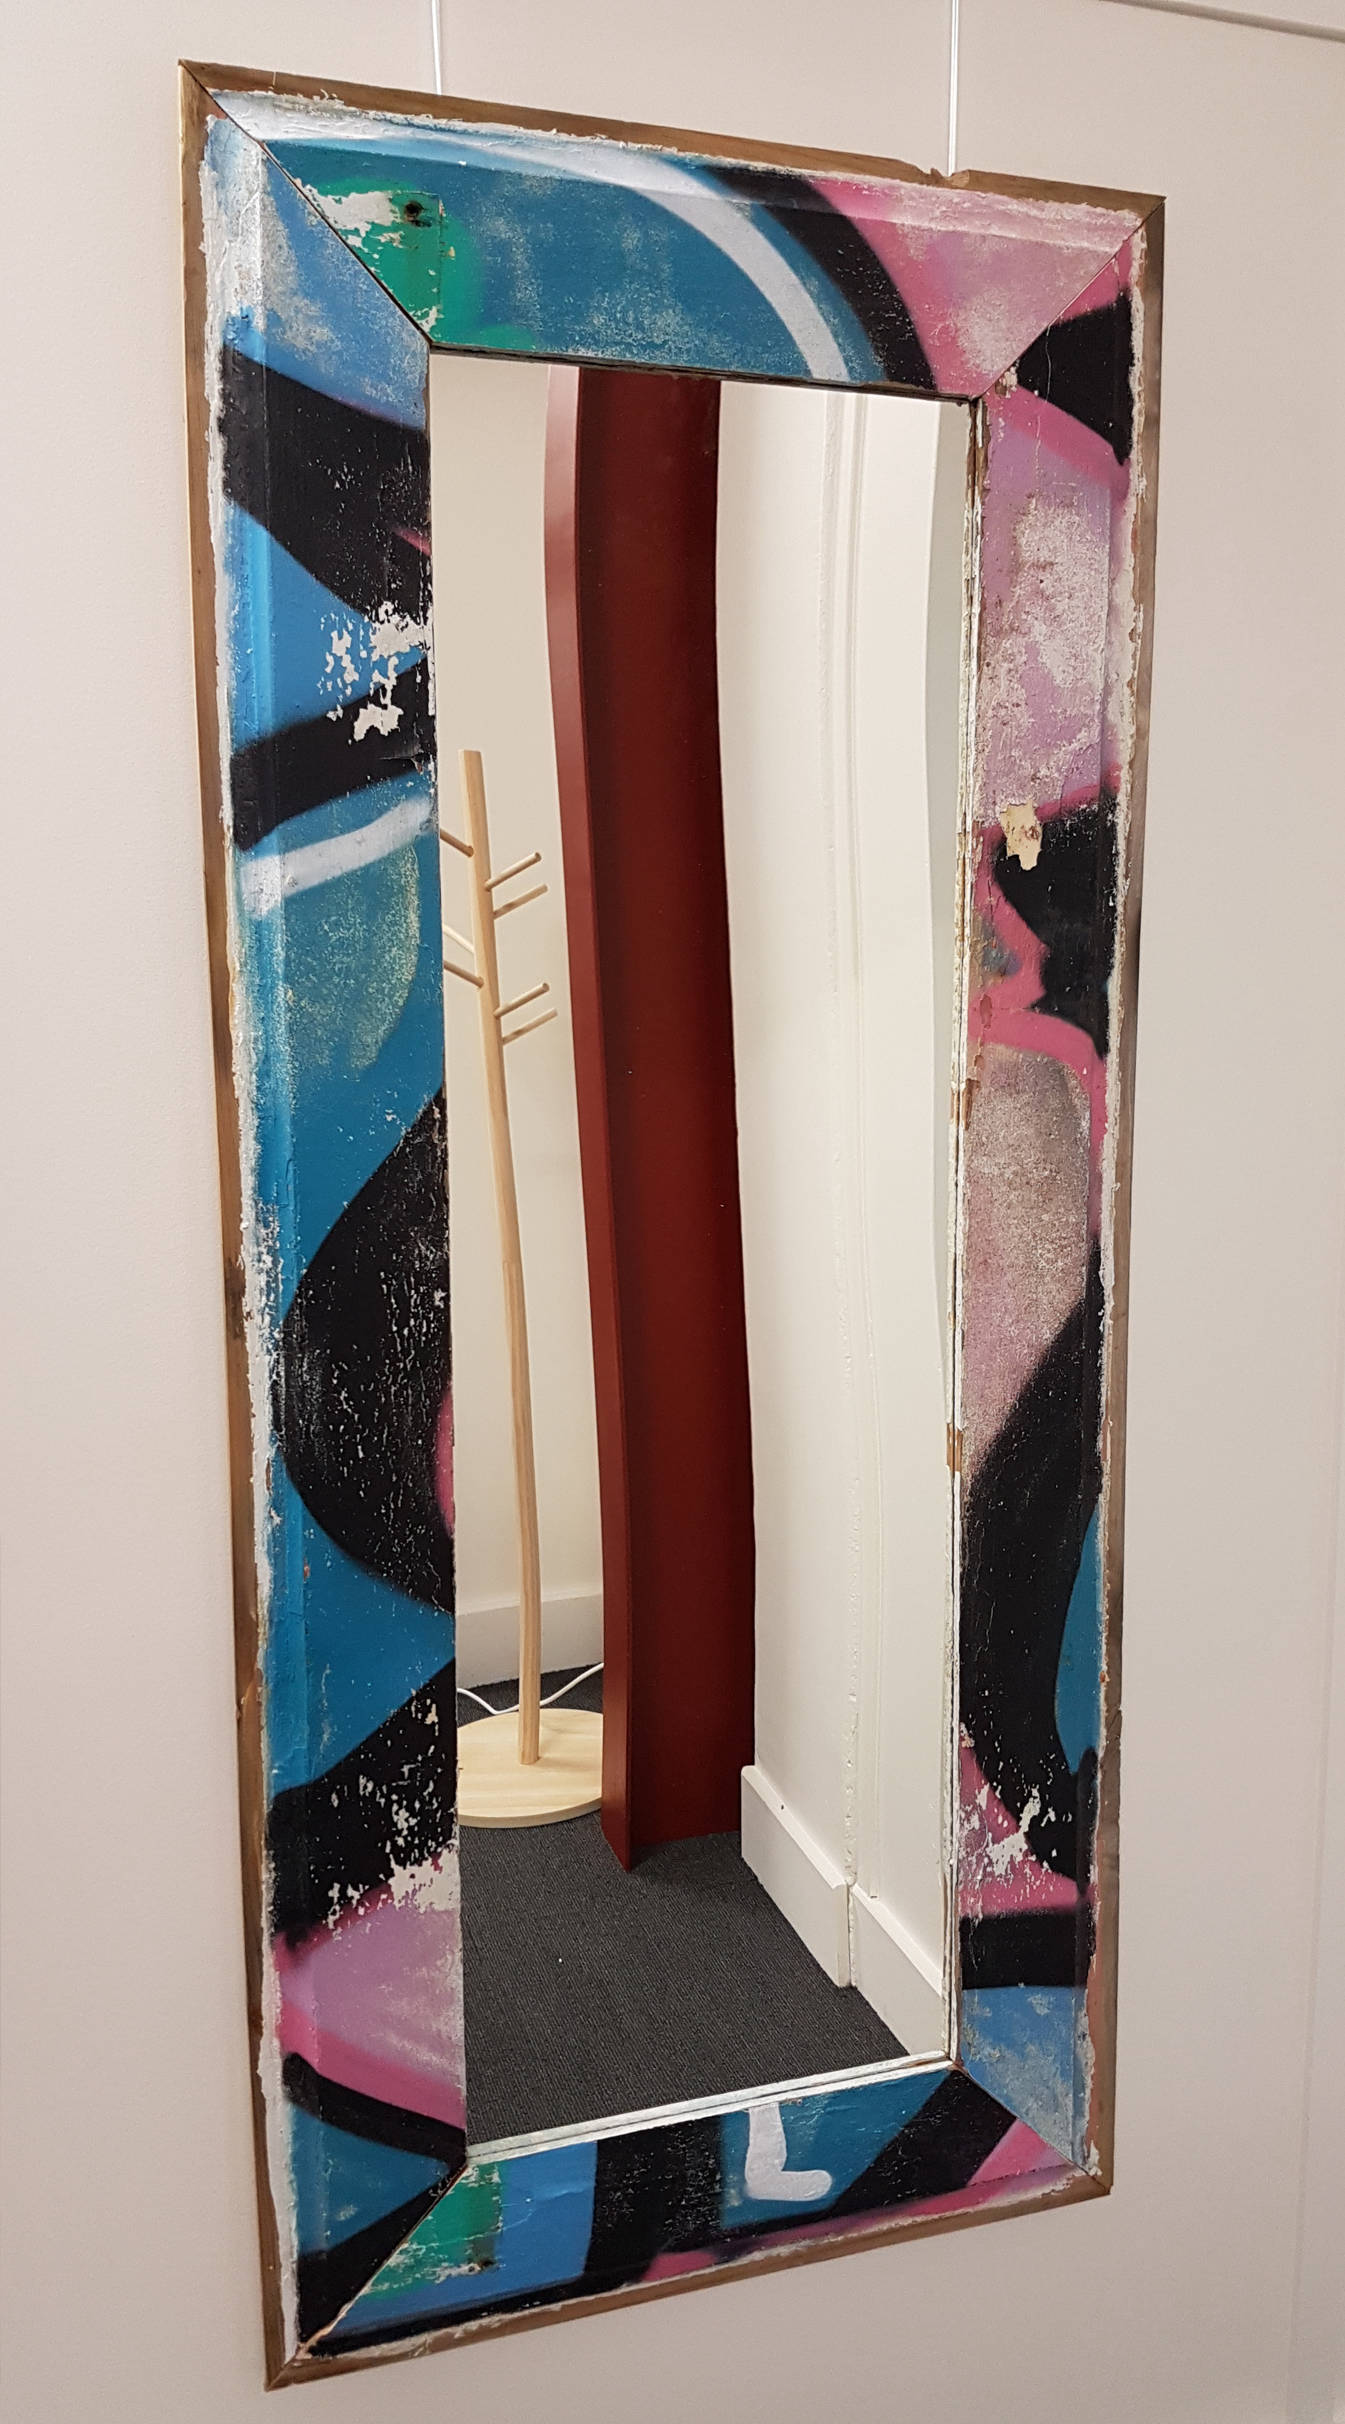 Large upcycled graffiti weatherboard framed mirror Dimensions: 640mm x 1455mm. Price: $350